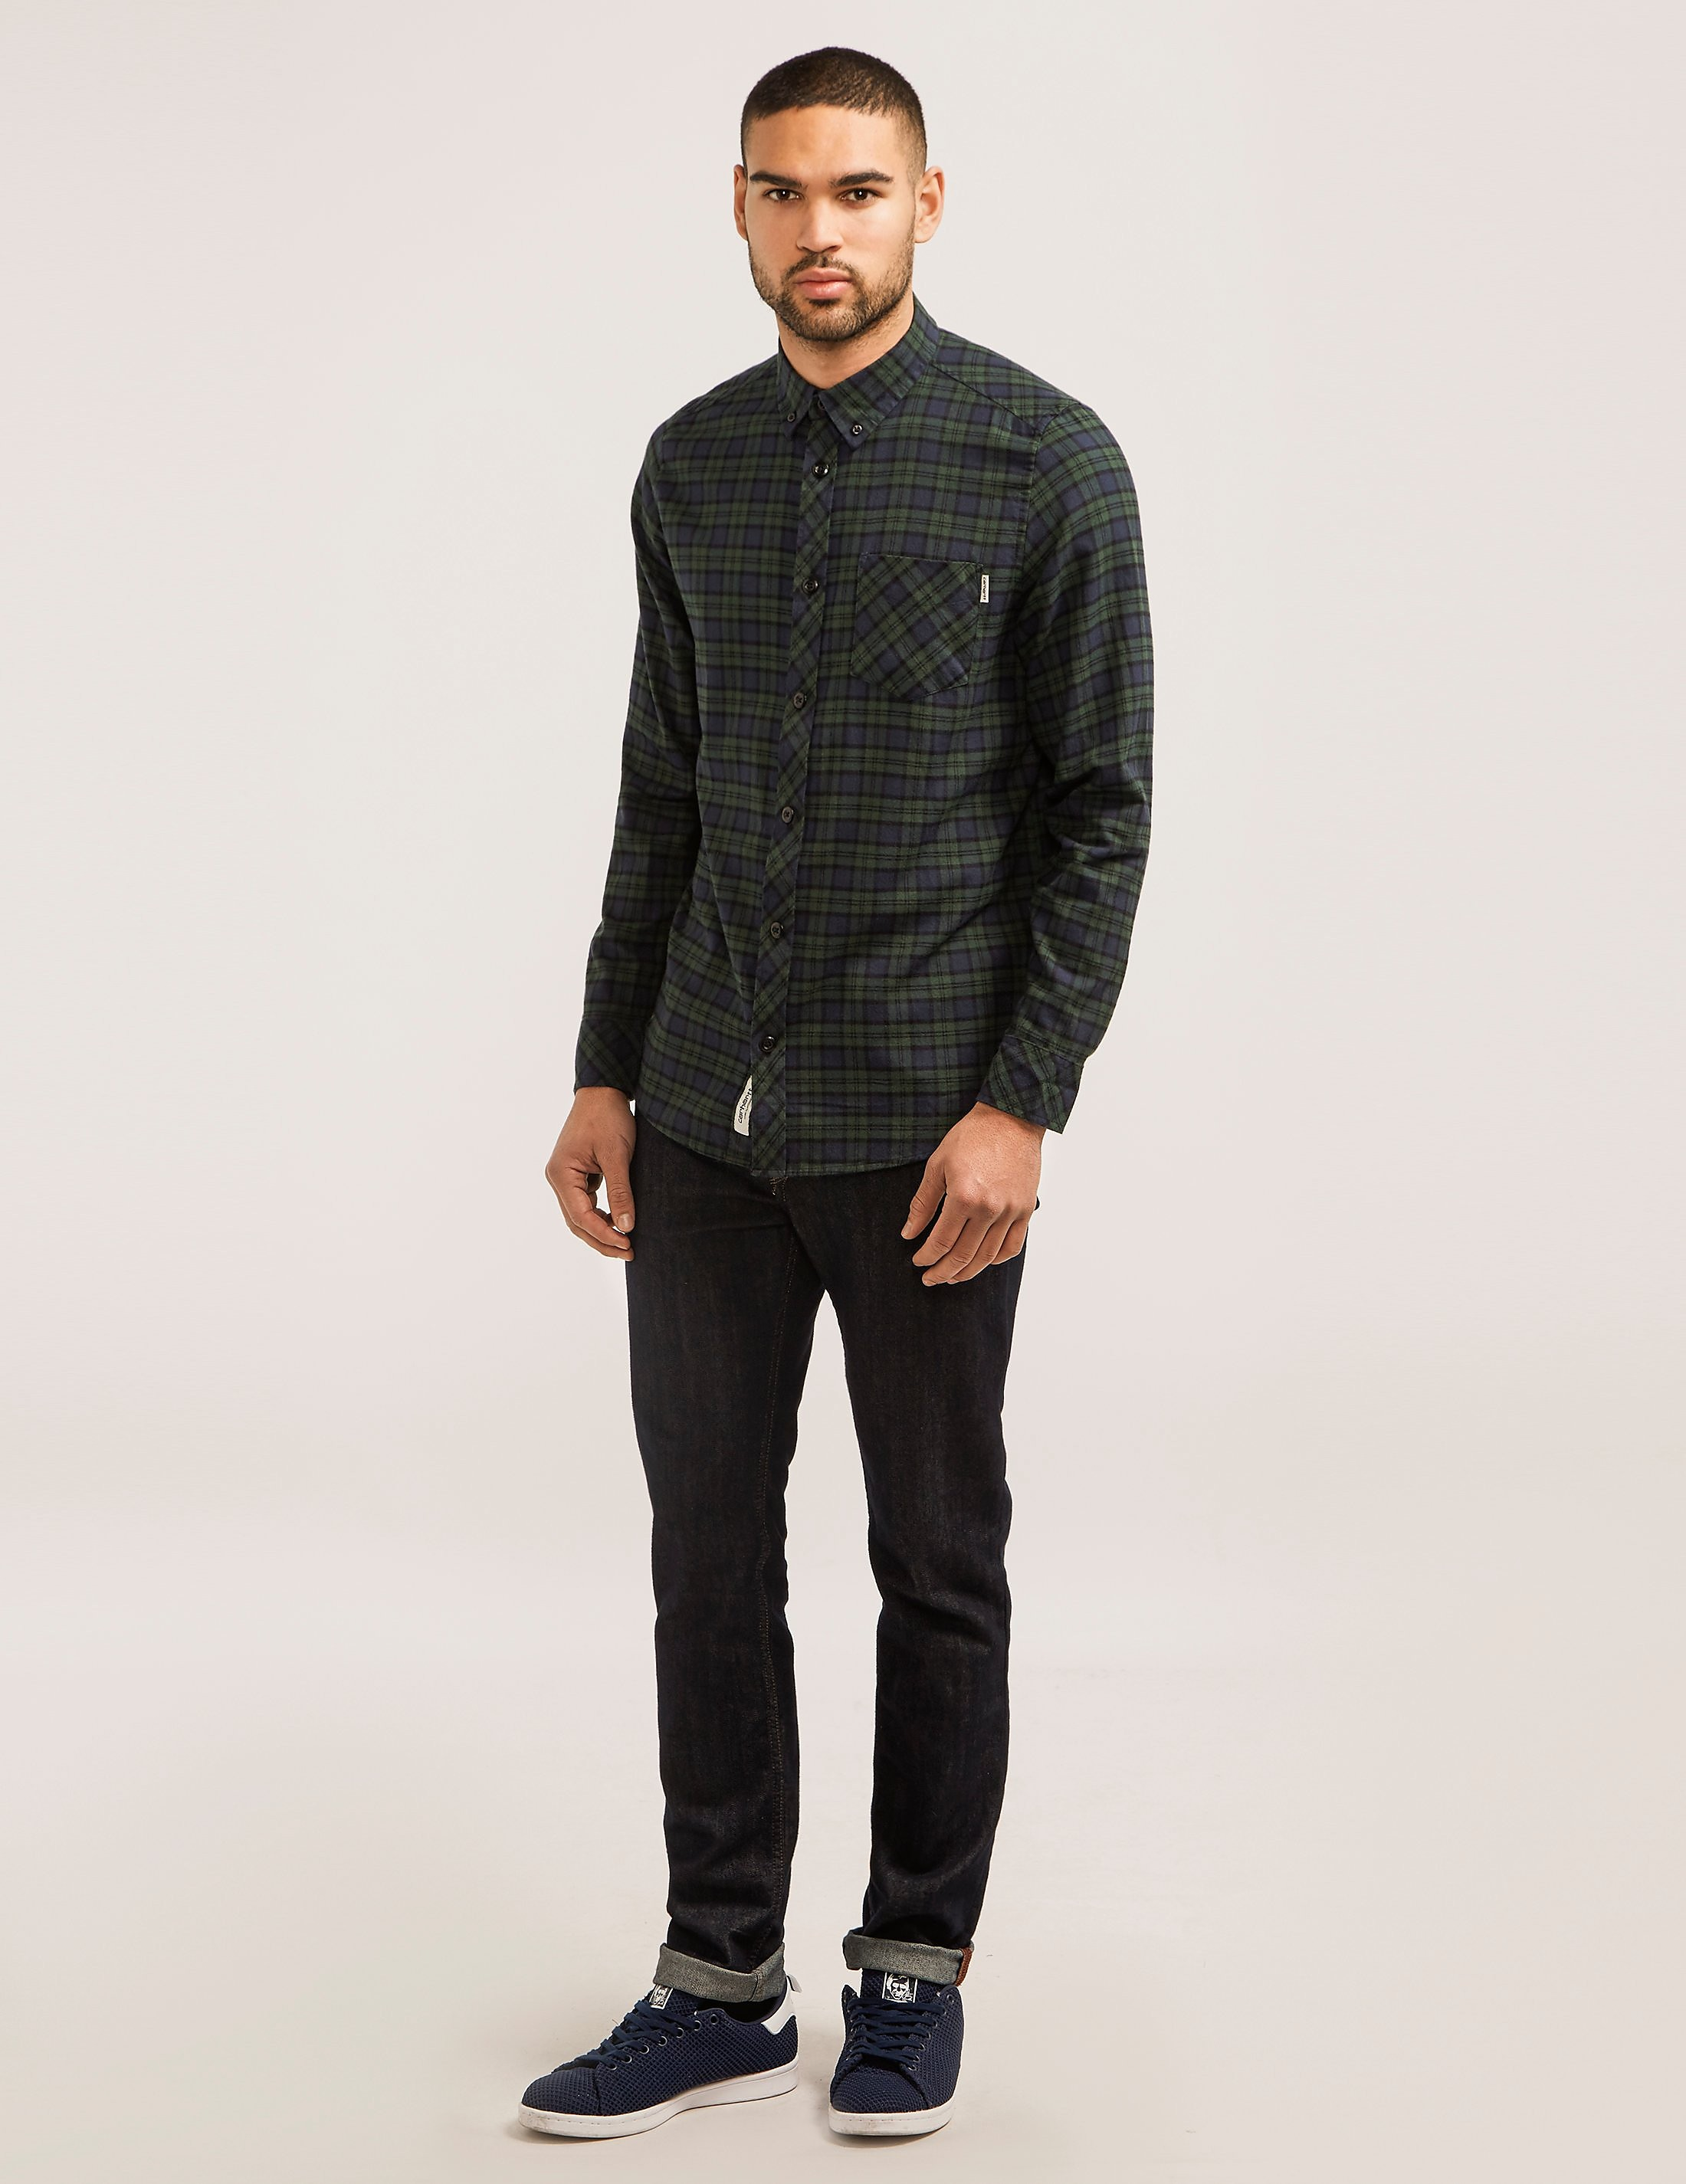 Carhartt WIP Long-Sleeved Shawn Shirt